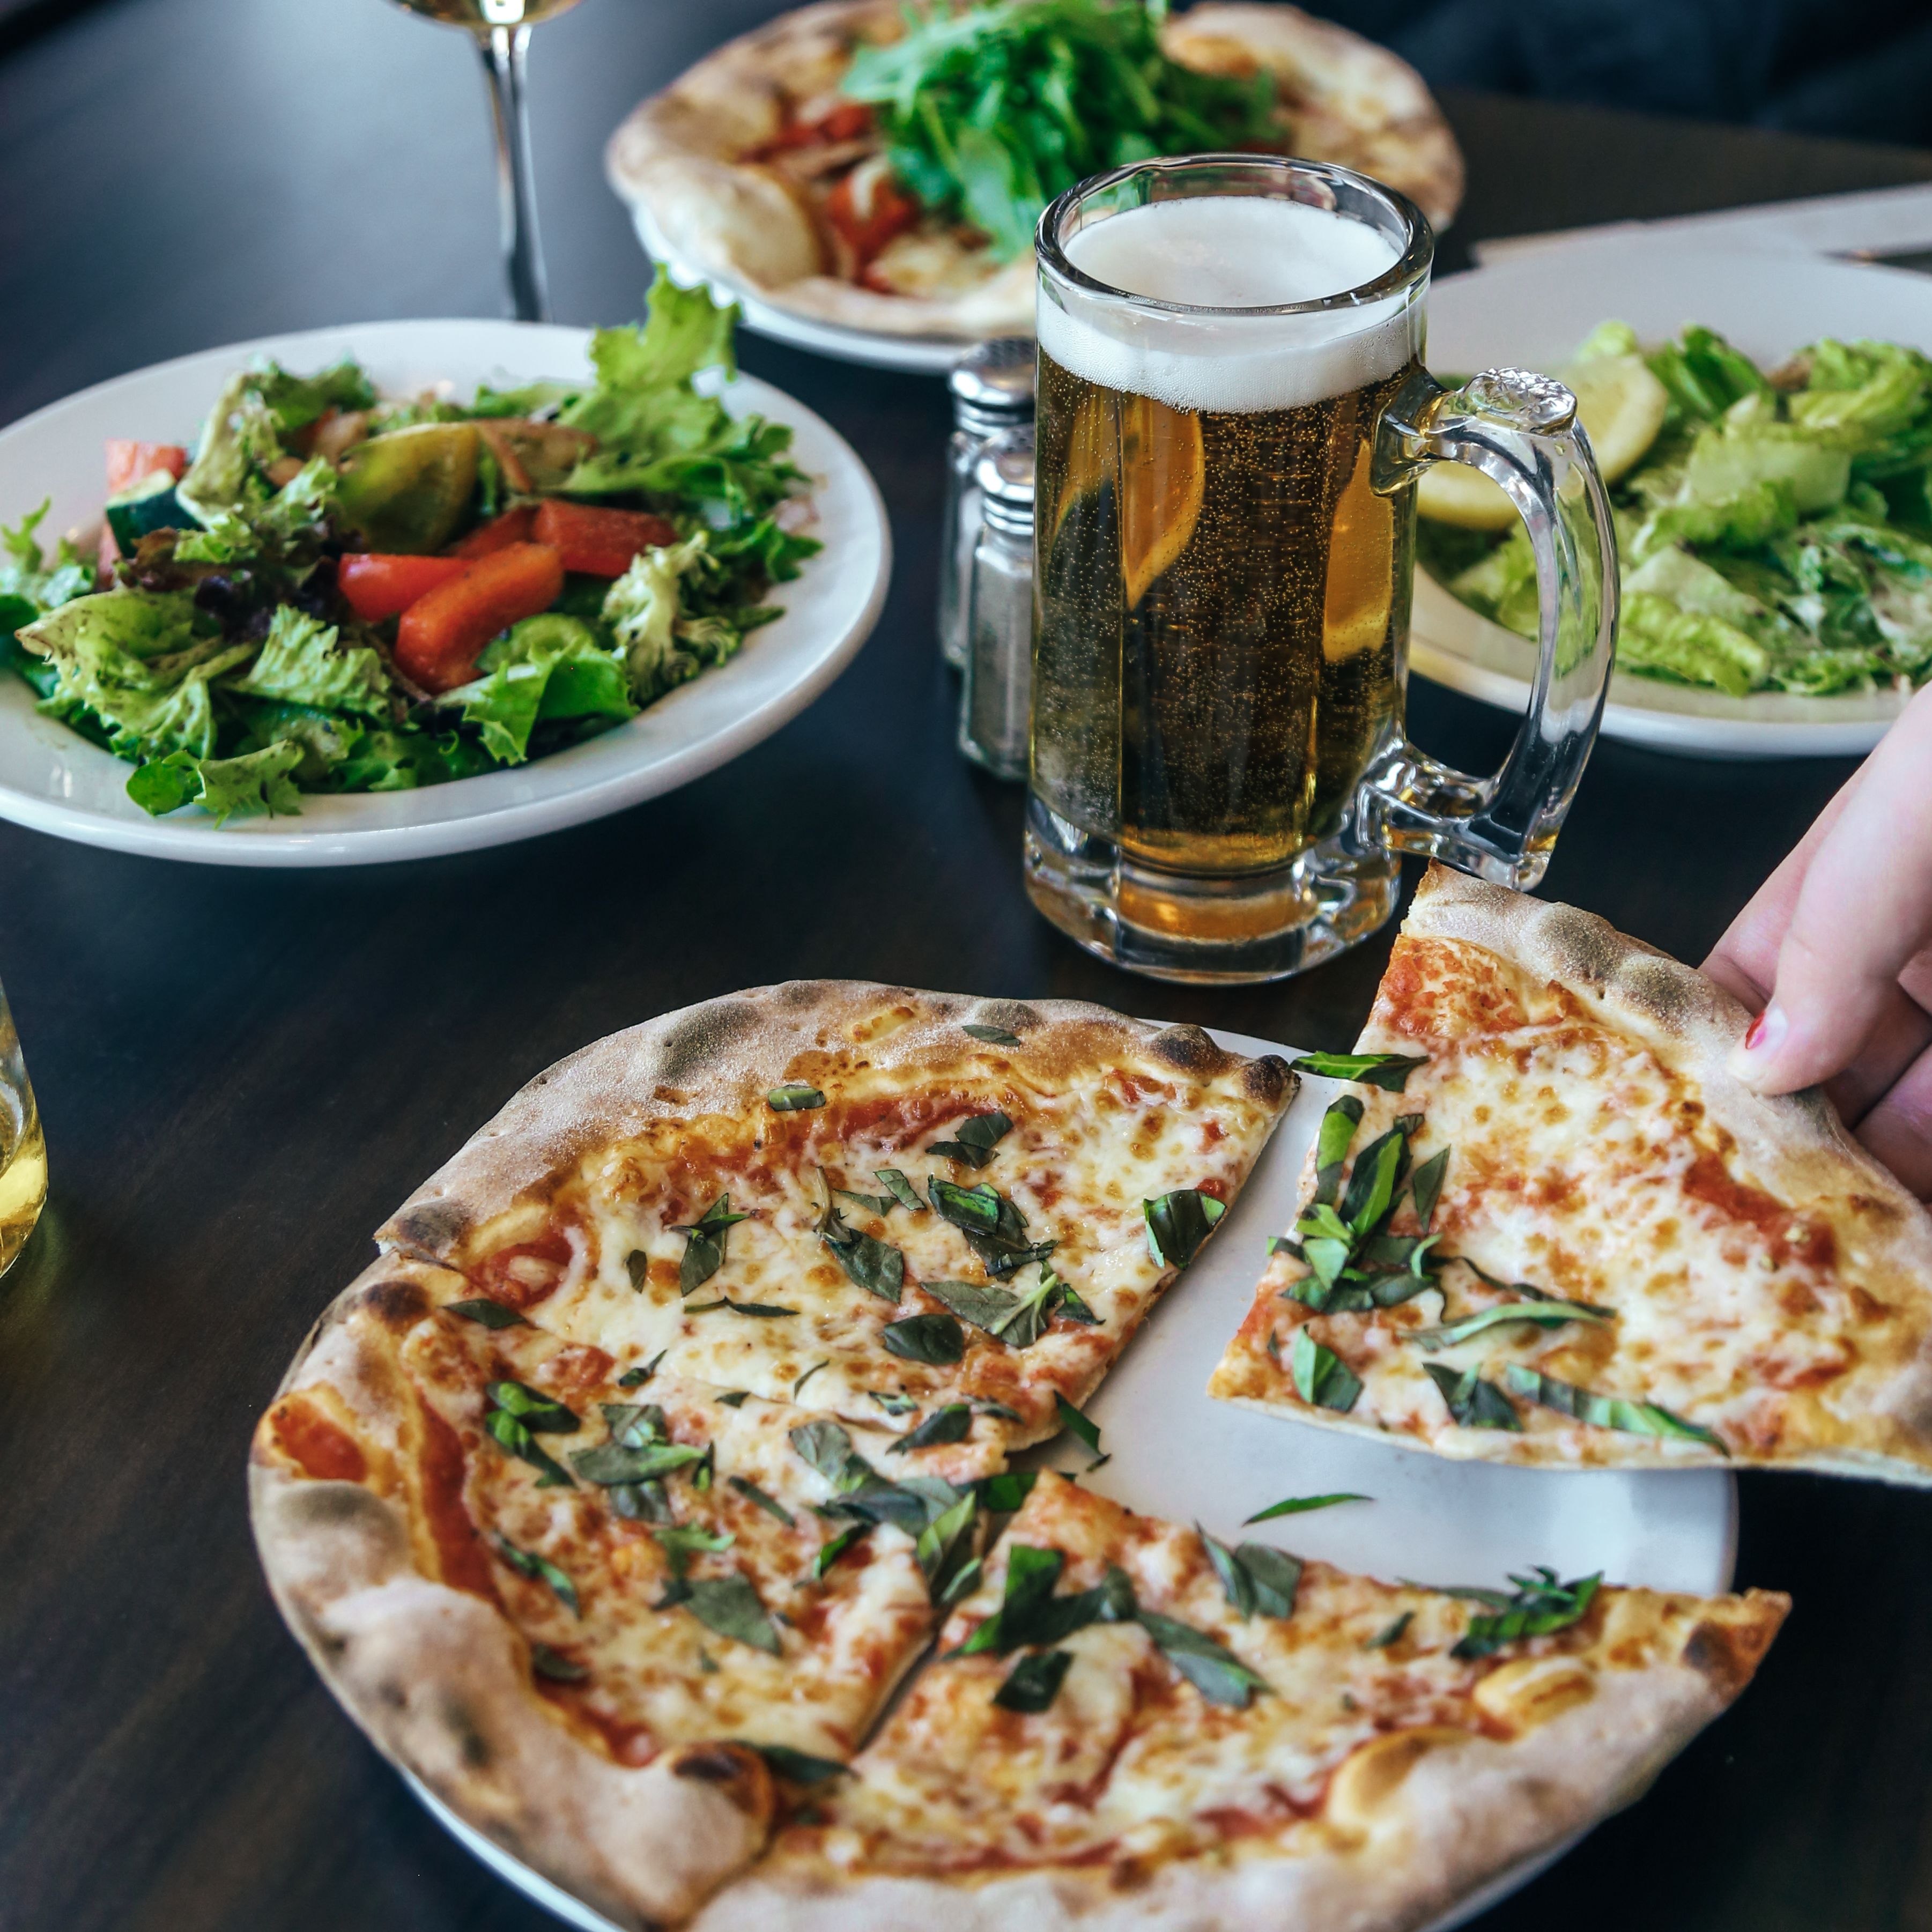 Pizza, salad and beer at La Piazza